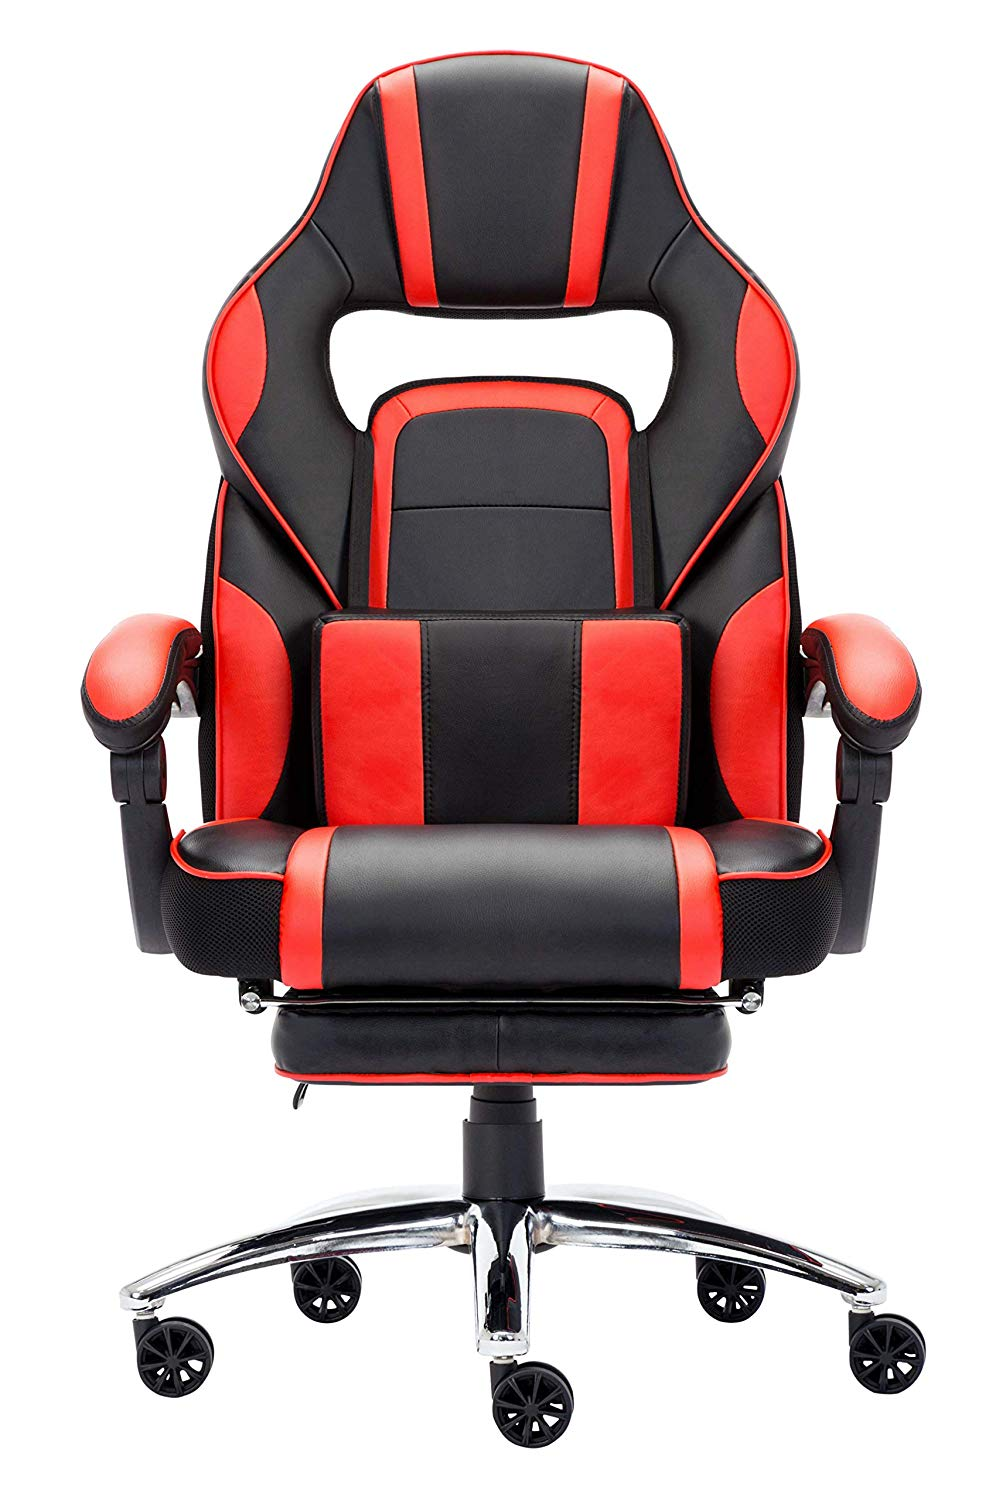 Racing Gaming Office Chair Executive Chair Footrest And Lumbar Cushion Heavy Duty Ergonomic Reclining Working Chair GB